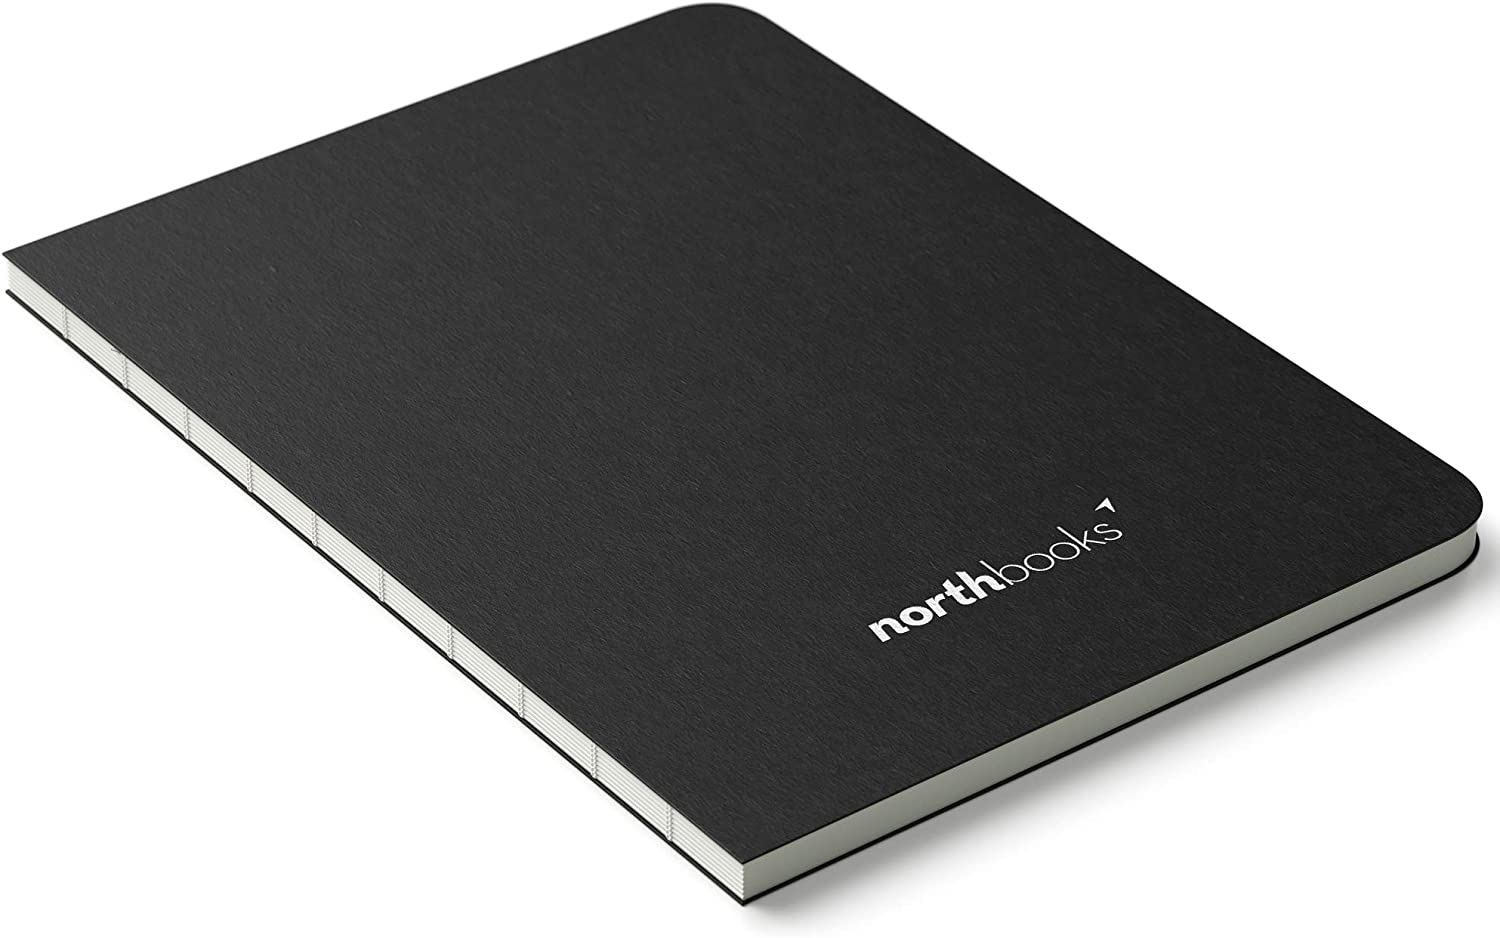 Northbooks A5 X Dotted Bullet Notebook | 180 Degree Lay Flat Design | 158 Numbered Pages | Minimal Journal 148 x 210 mm / 5.8 x 8.3 inch